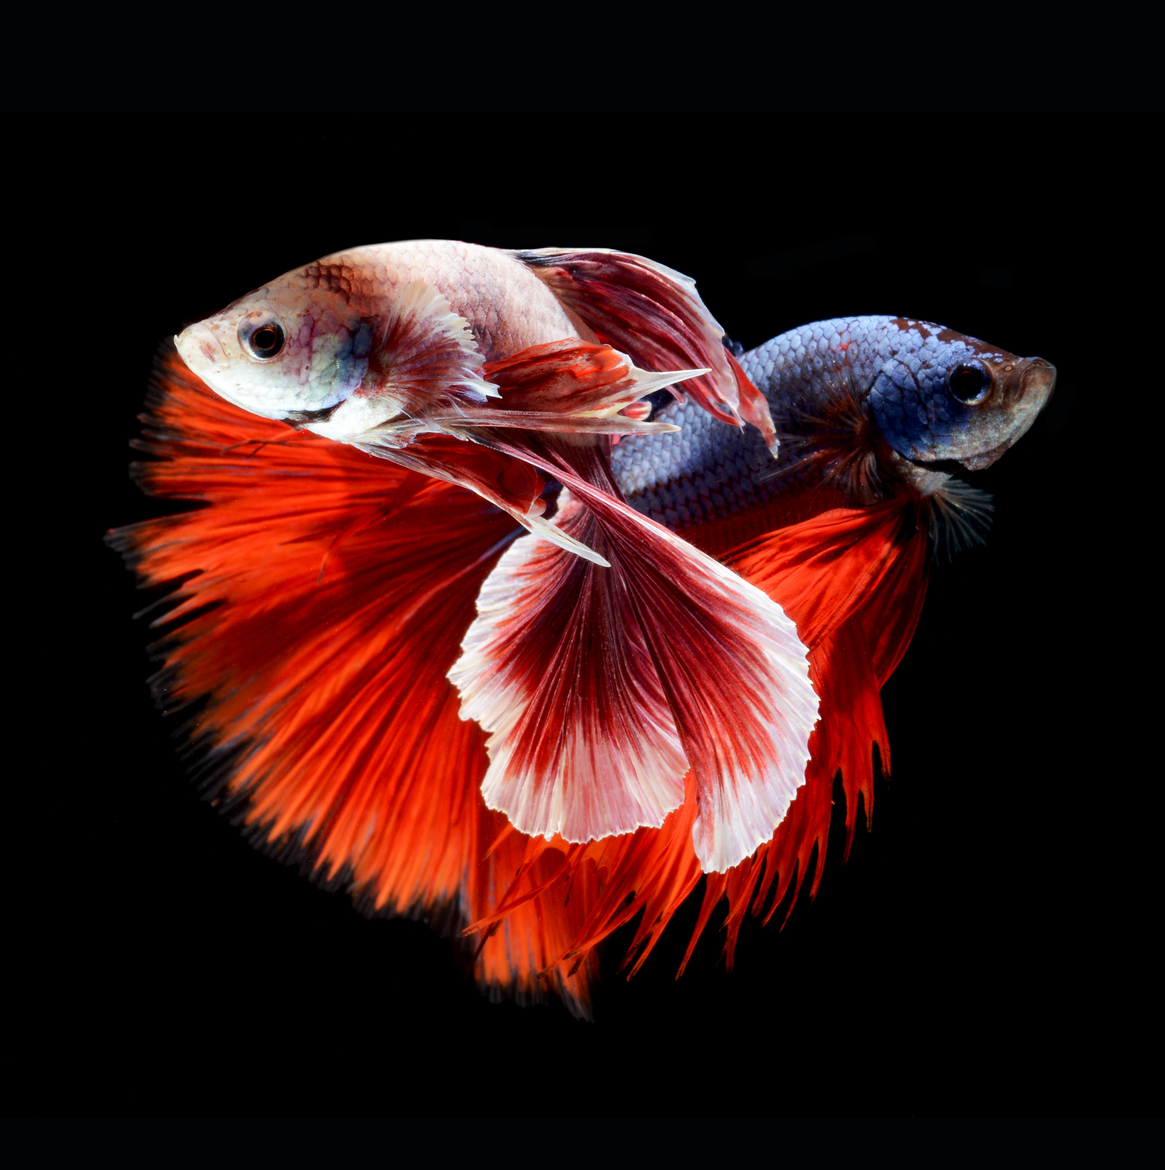 siamese-fighting-fish-visarute-angkatavanich-02